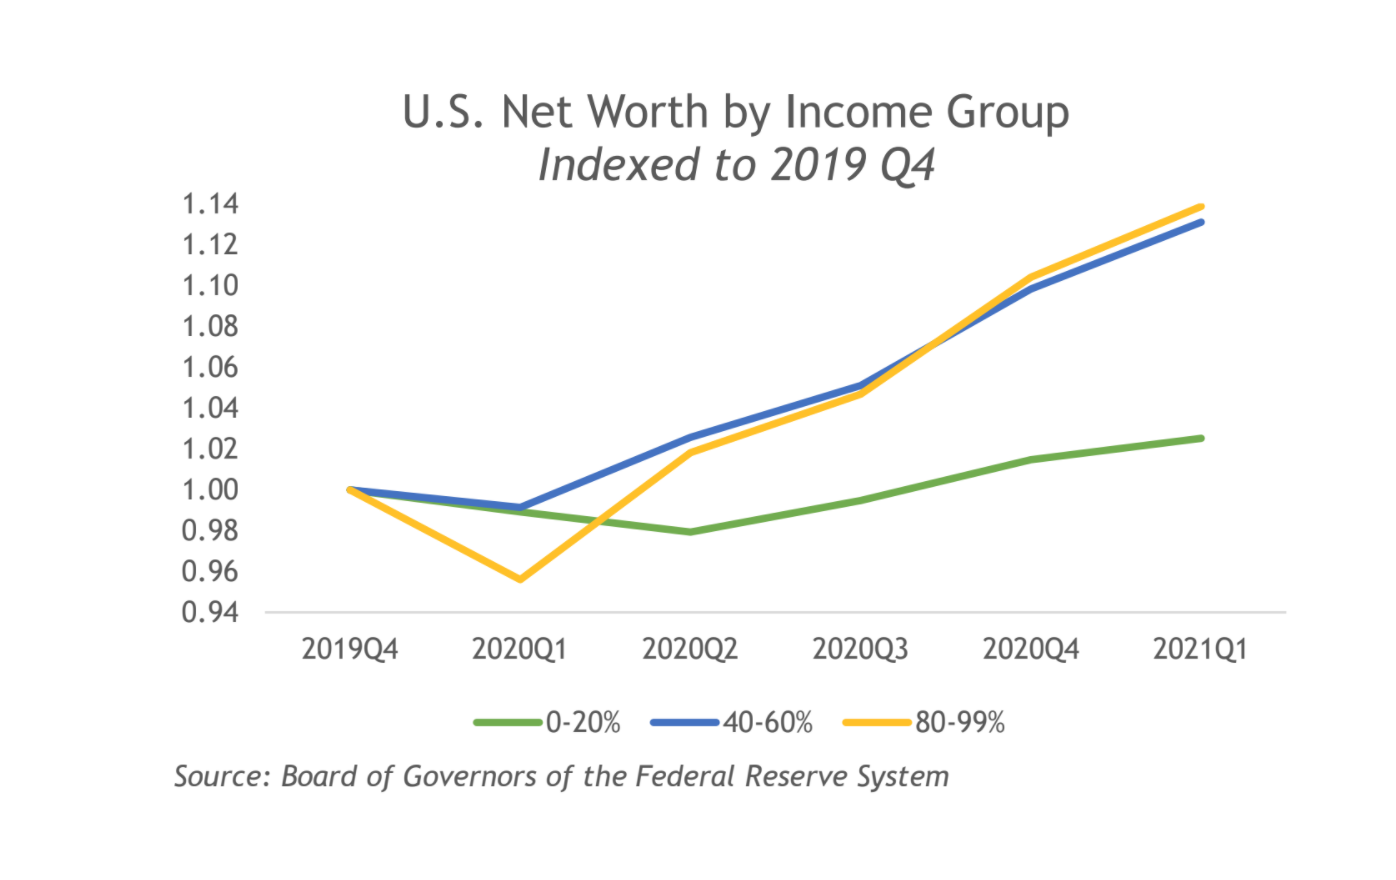 net worth by income group